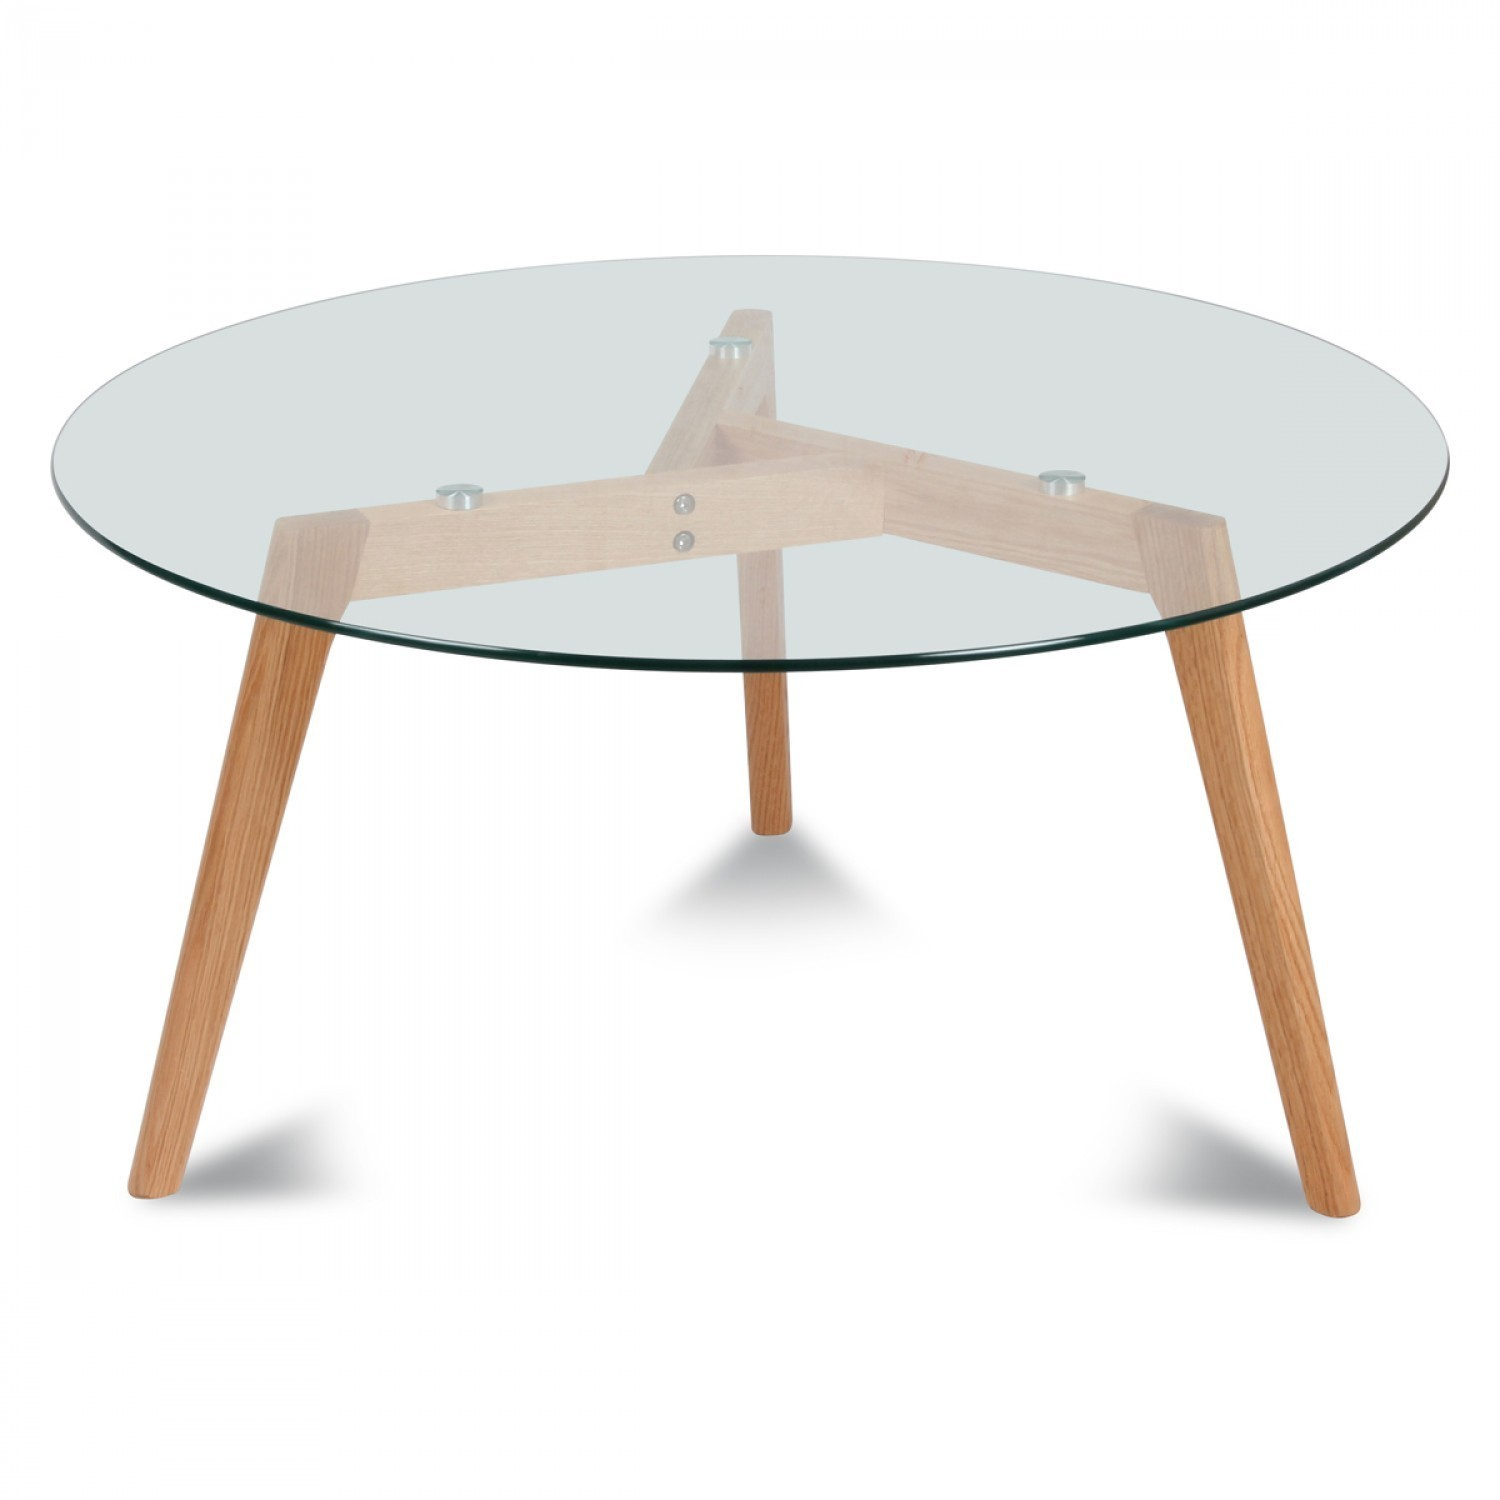 Table basse ronde verre et bois scandinave fiord 60 - Table basse scandinave ronde ...